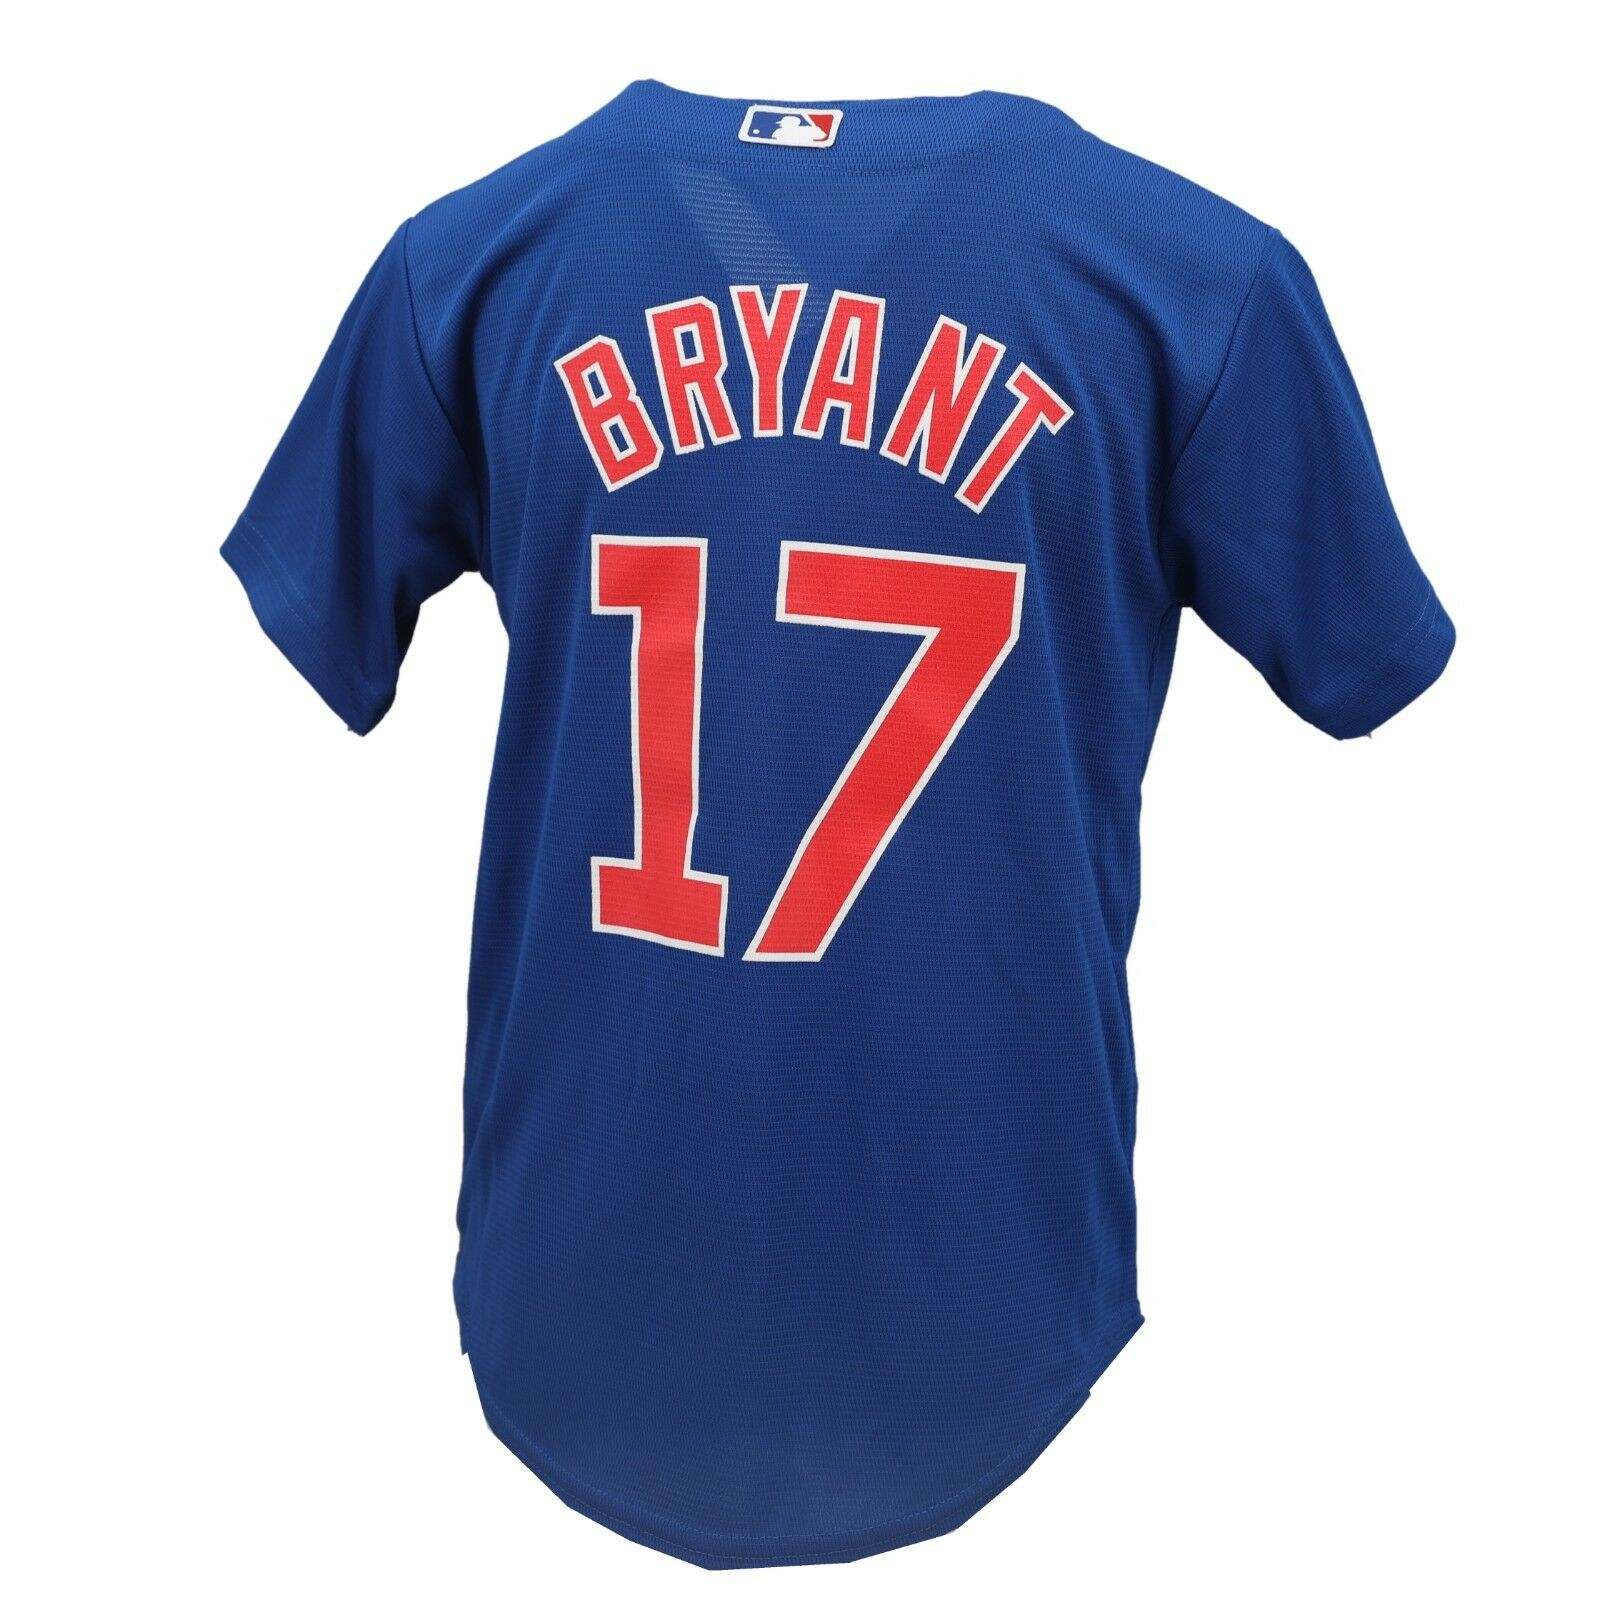 meet 891e7 5137c Details about Chicago Cubs MLB Majestic Cool Base Kids Youth Size Kris  Bryant Jersey New Tags